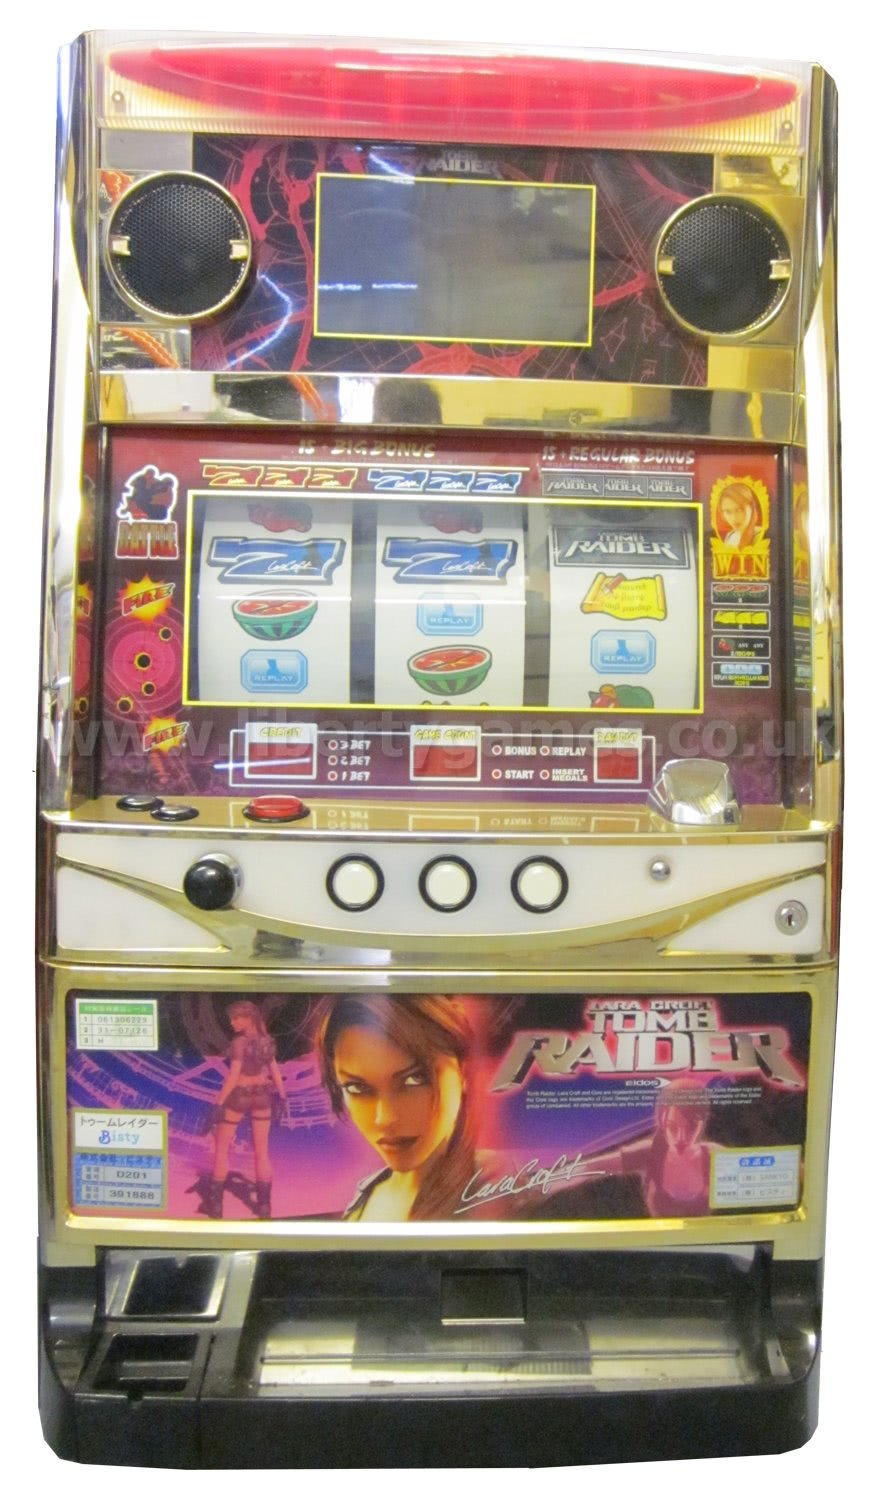 tomb raider slot machine for sale